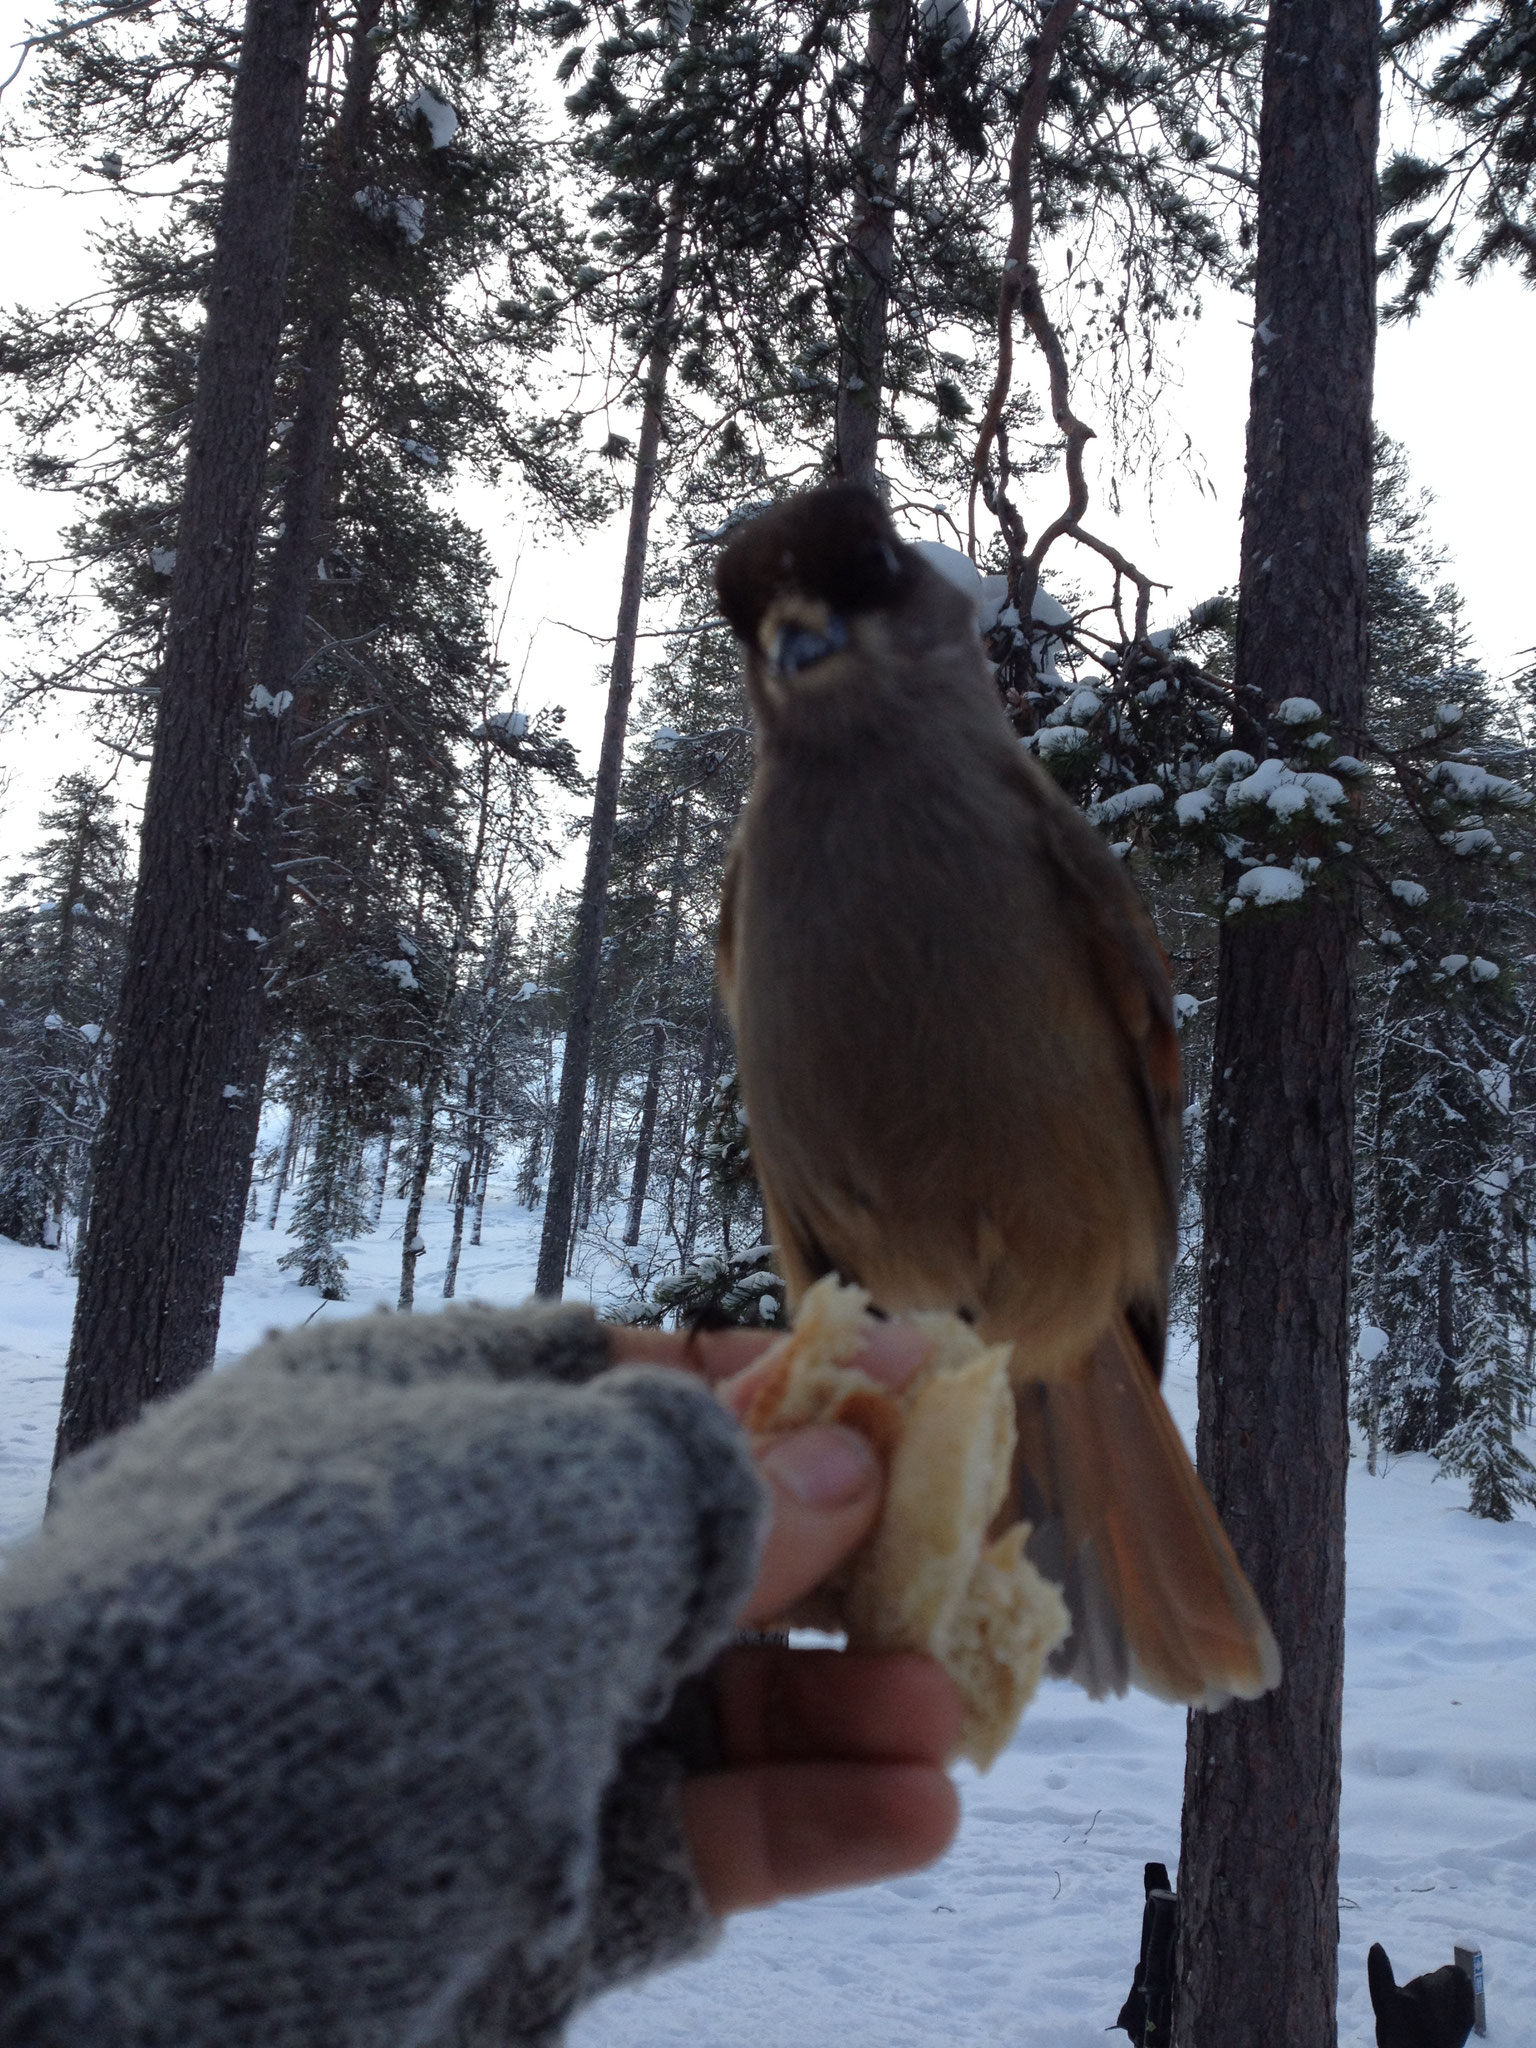 Siberian jay, this bird is called kuukkeli in Finnish : the lucky bird of Lapland.